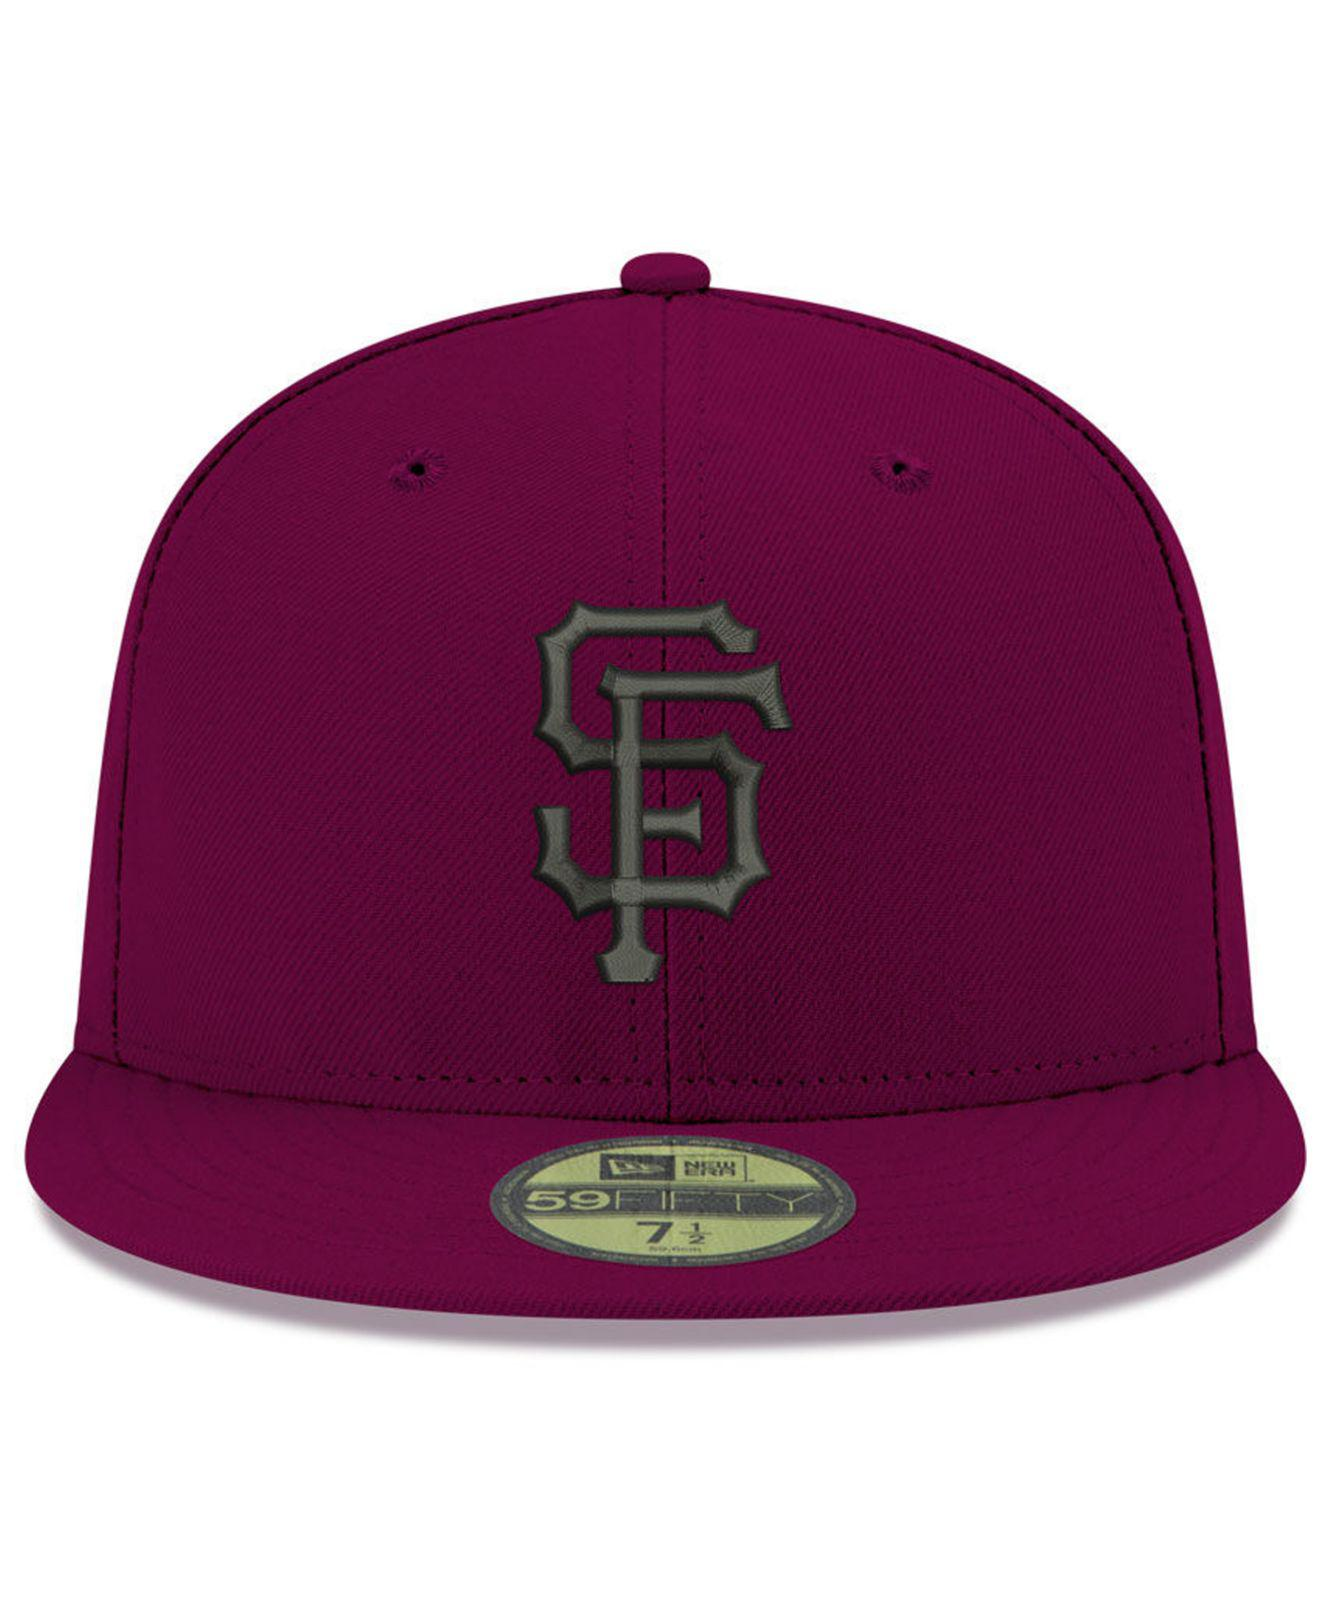 huge discount c87e2 a7410 Lyst - KTZ San Francisco Giants Reverse C-dub 59fifty Fitted Cap in ...